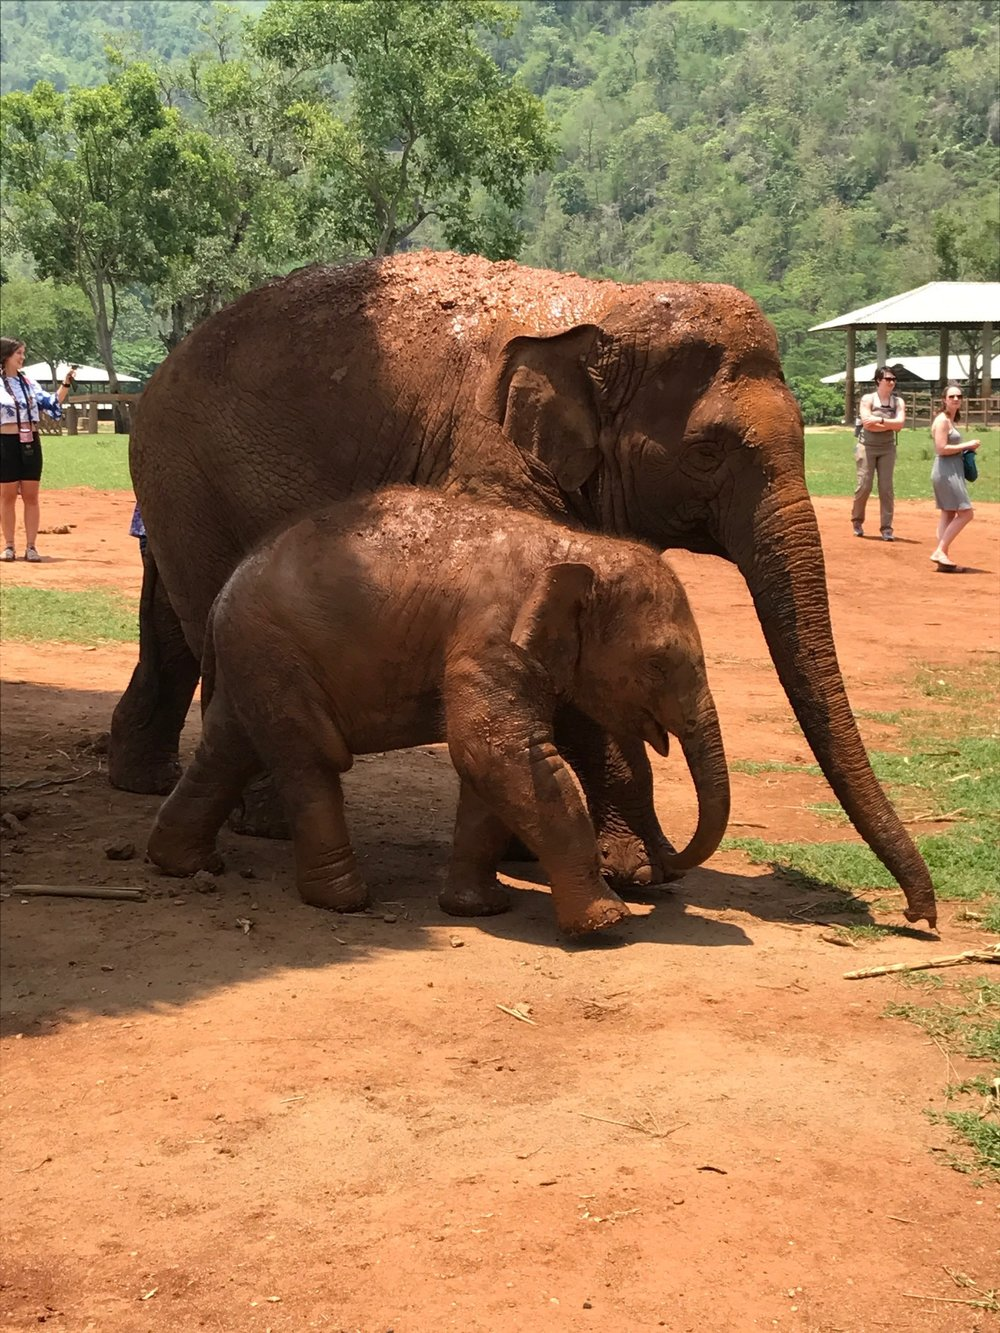 Instead of patronizing an operation that offers elephant rides or tricks, go to a sanctuary like the Elephant Nature Park outside of Chiang Mai, Thailand, which rescues abused elephants